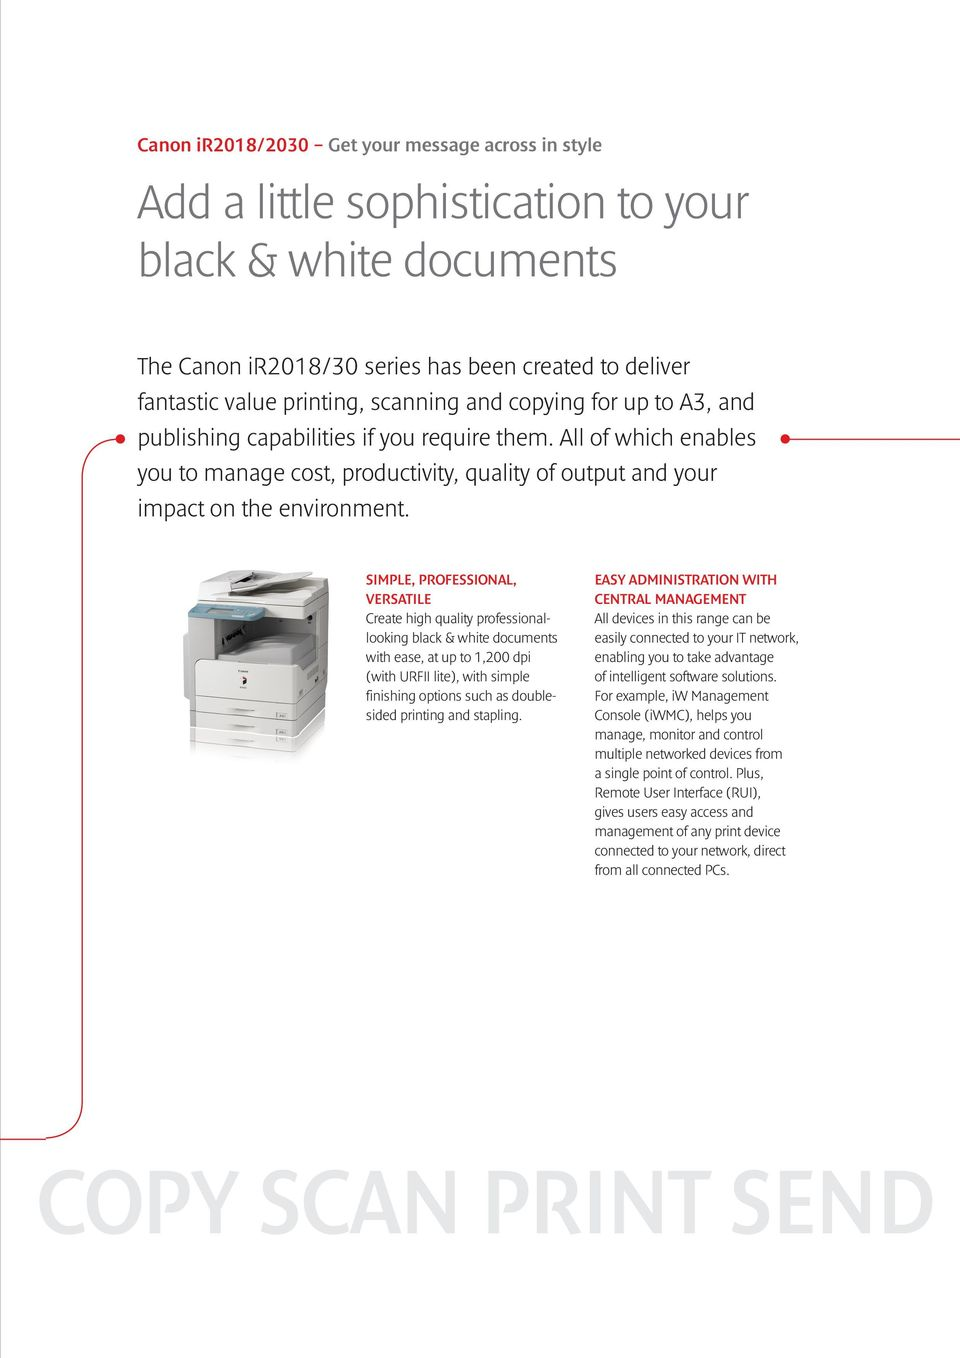 SIMPLE, PROFESSIONAL, VERSATILE Create high quality professionallooking black & white documents with ease, at up to 1,200 dpi (with URFII lite), with simple finishing options such as doublesided